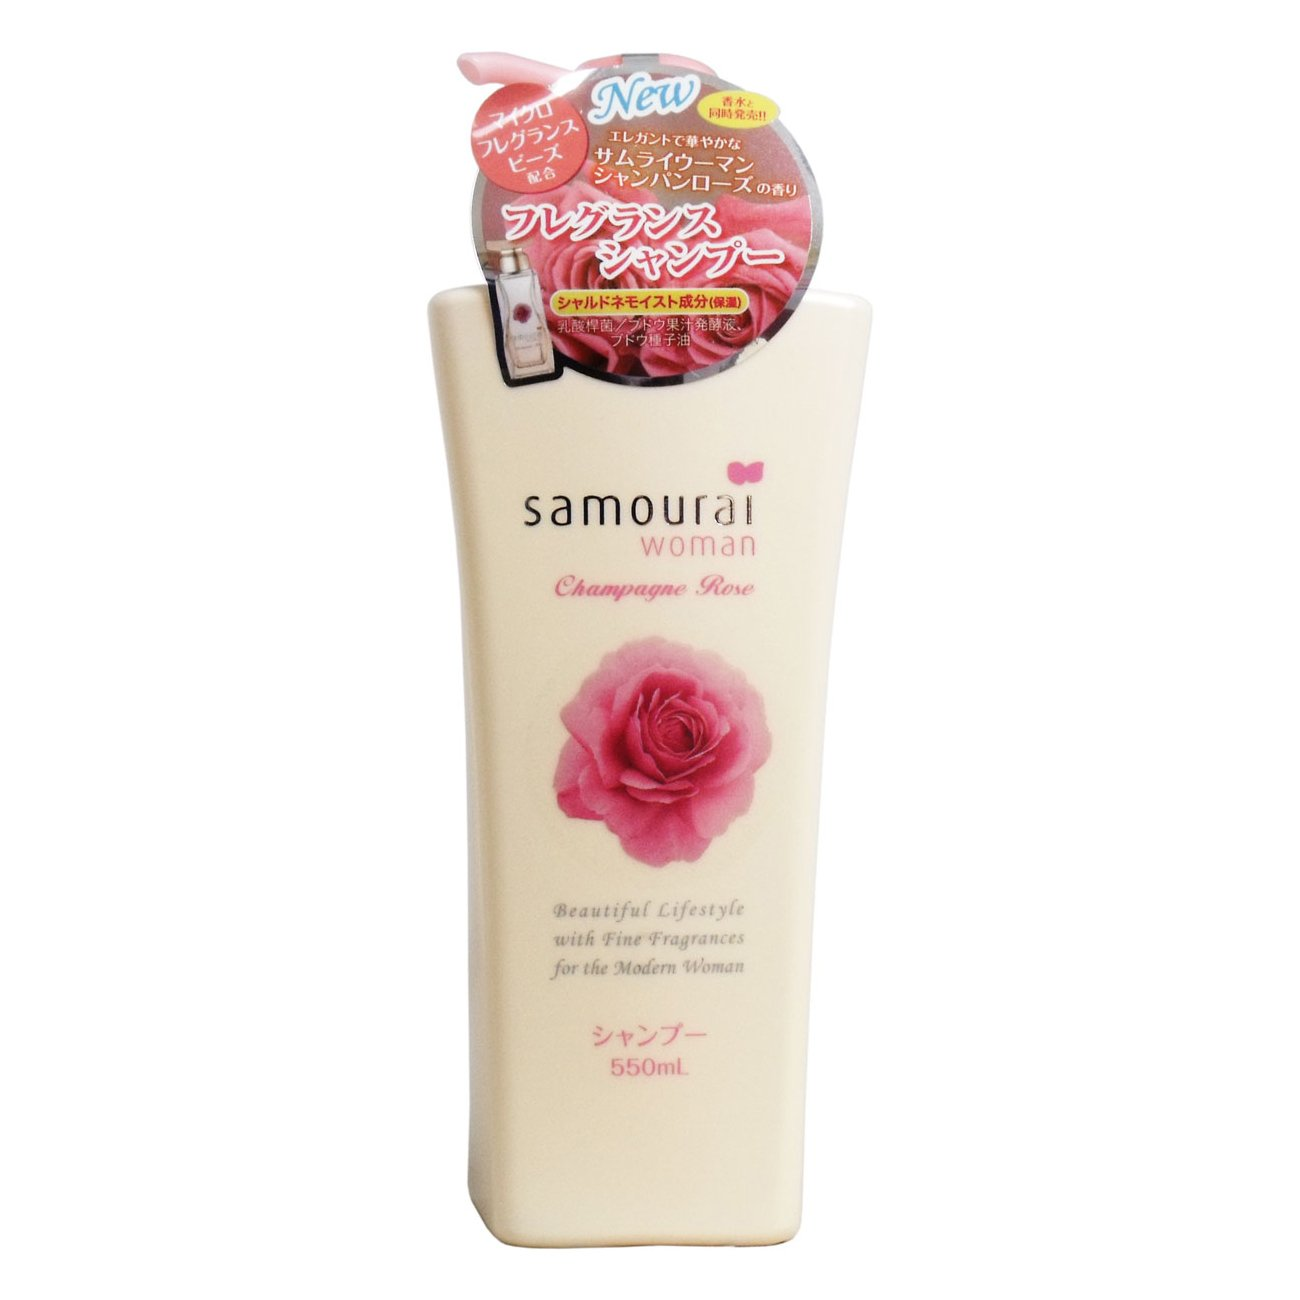 Samurai Woman Champagne Rose Shampoo 550ml